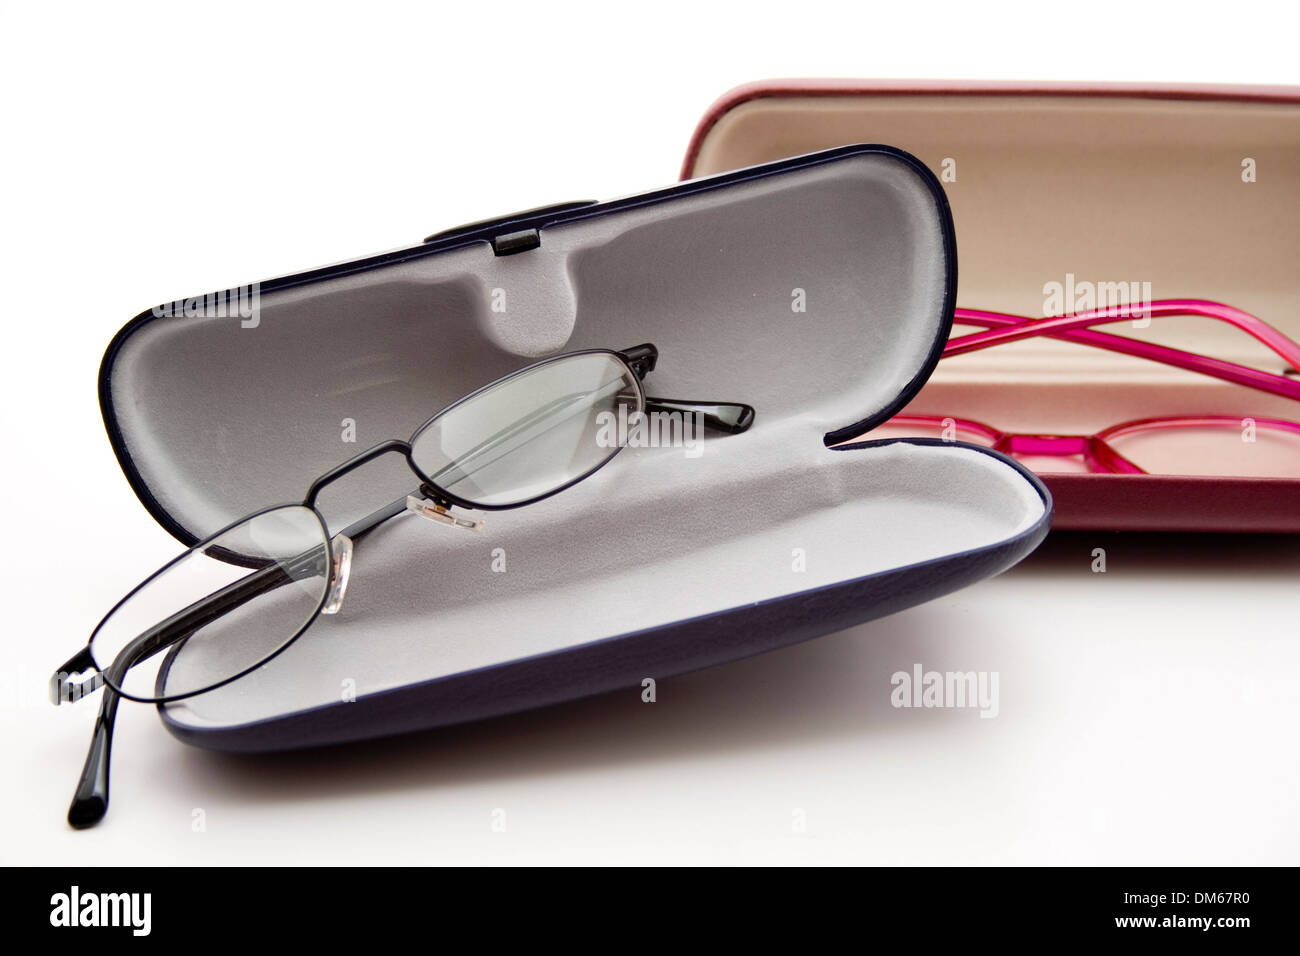 Glasses with case - Stock Image